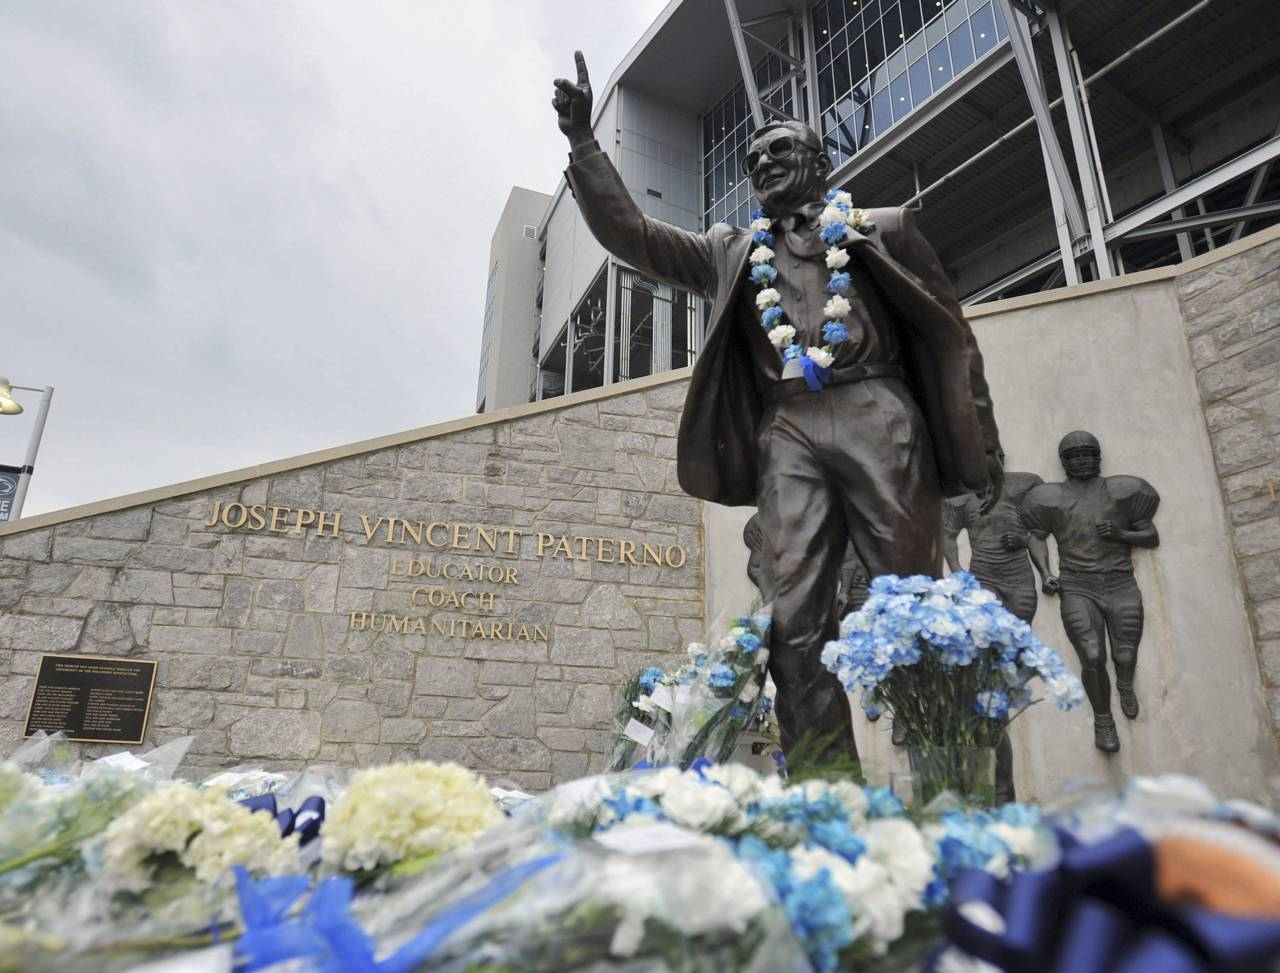 Signs and flowers are seen at the statue of the late Penn State football coach Joe Paterno, before the annual spring football scrimmage in State College, Pennsylvania April 21, 2012. Paterno died on January 22, 2012.Photo: Pat Little/Reuters